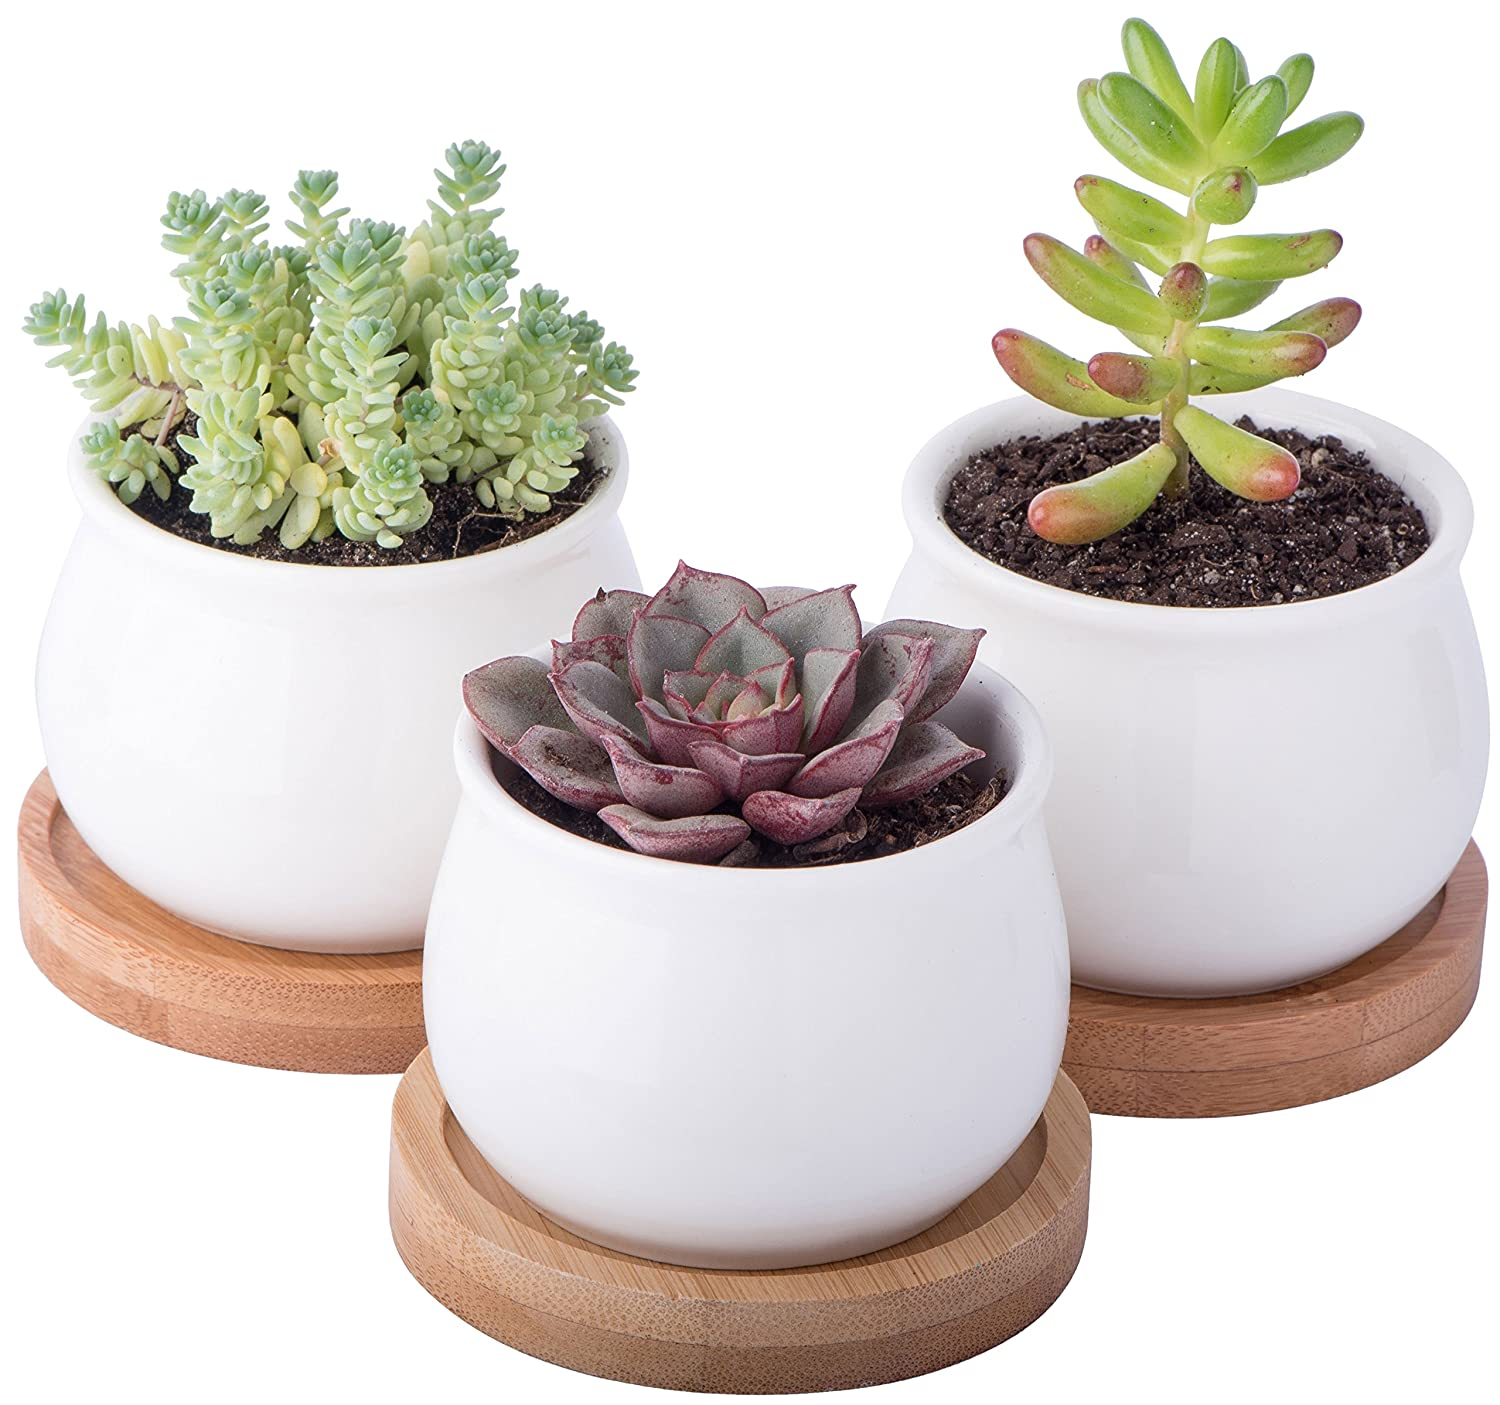 Amazon.com : StarPack Premium 3 Piece Mini White Ceramic Succulent ...